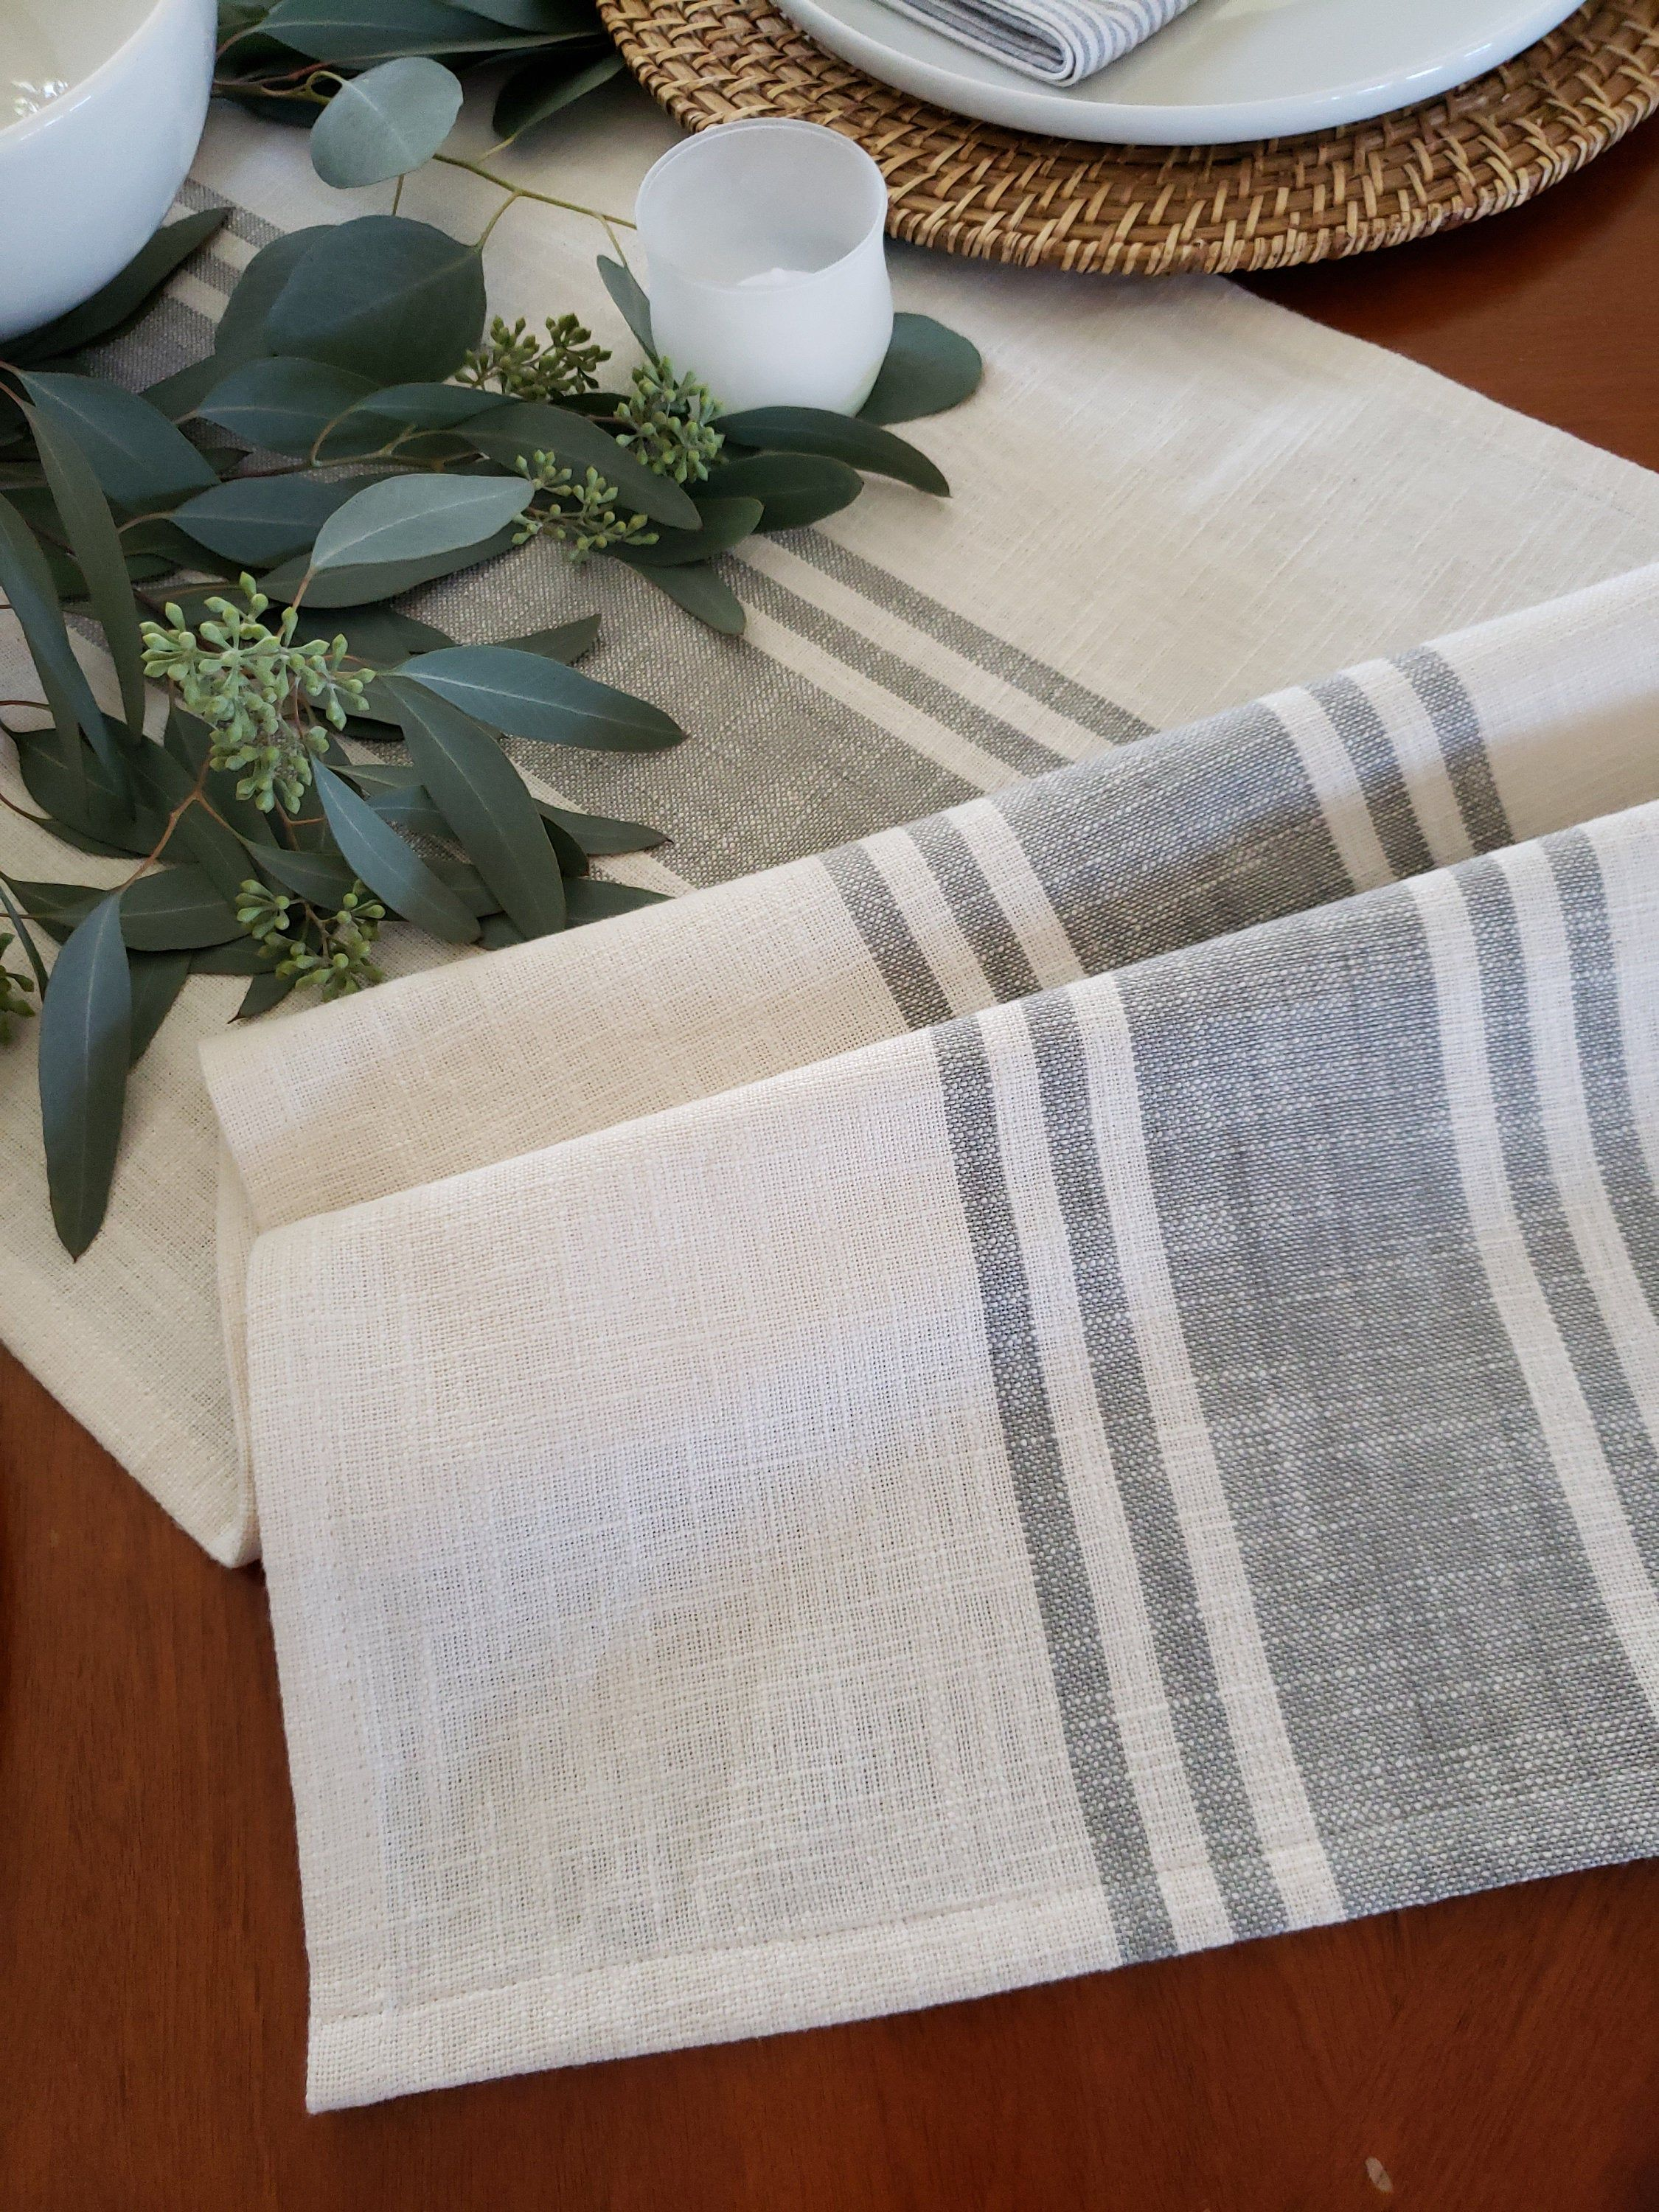 Farmhouse Table Runner with Black Stripes French Country Table Runner Mothers Day Gift Grainsack Table Runner Rustic Burlap Table Runner